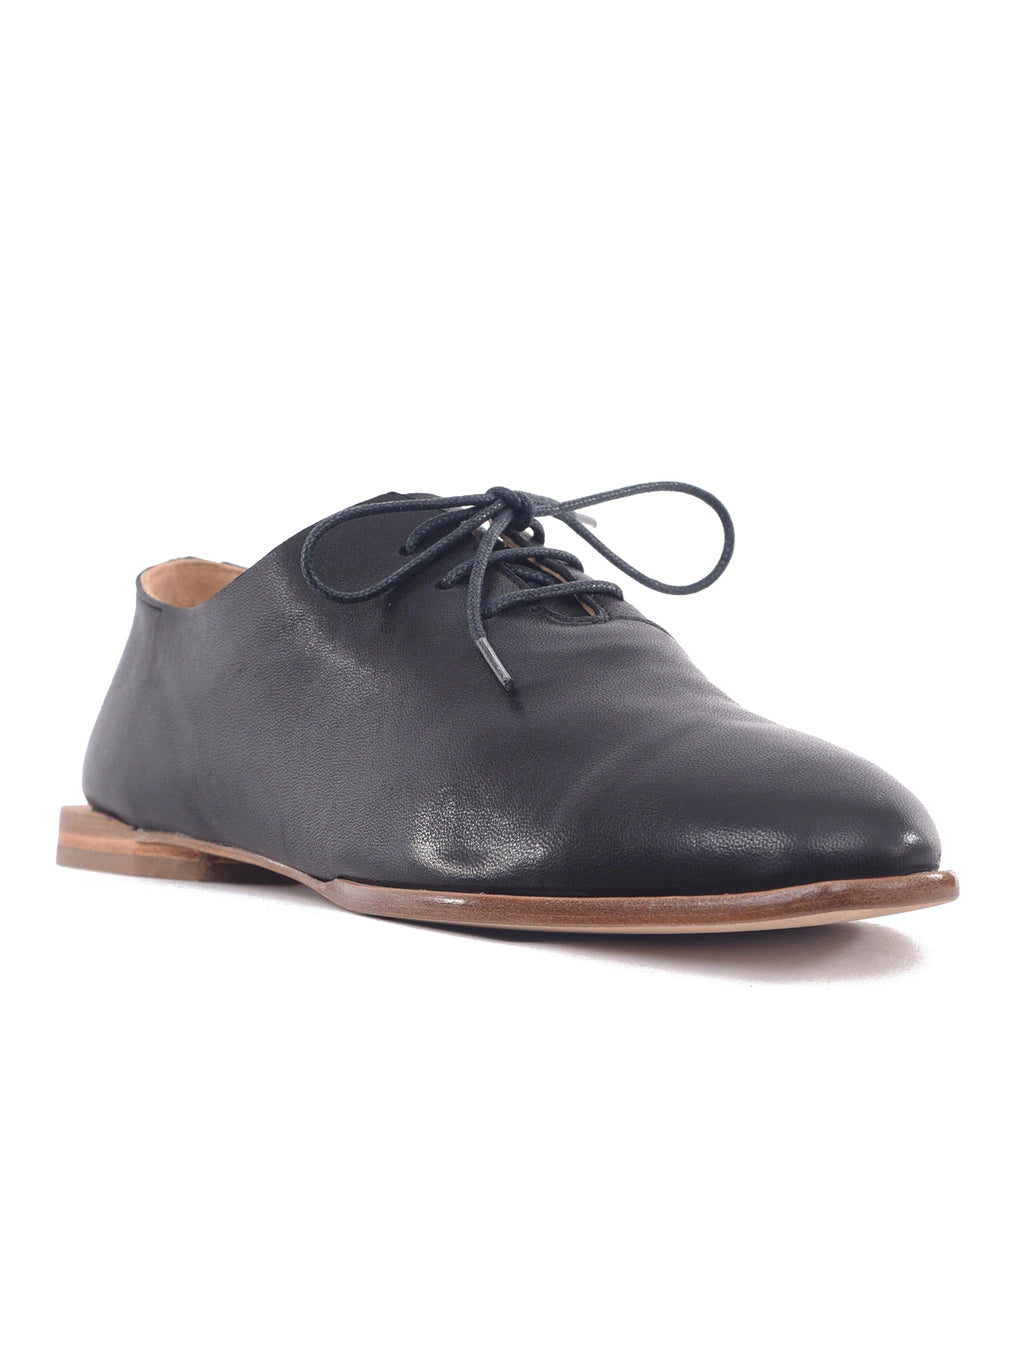 Coclico Holmes Oxford Shoes, Nappa Black